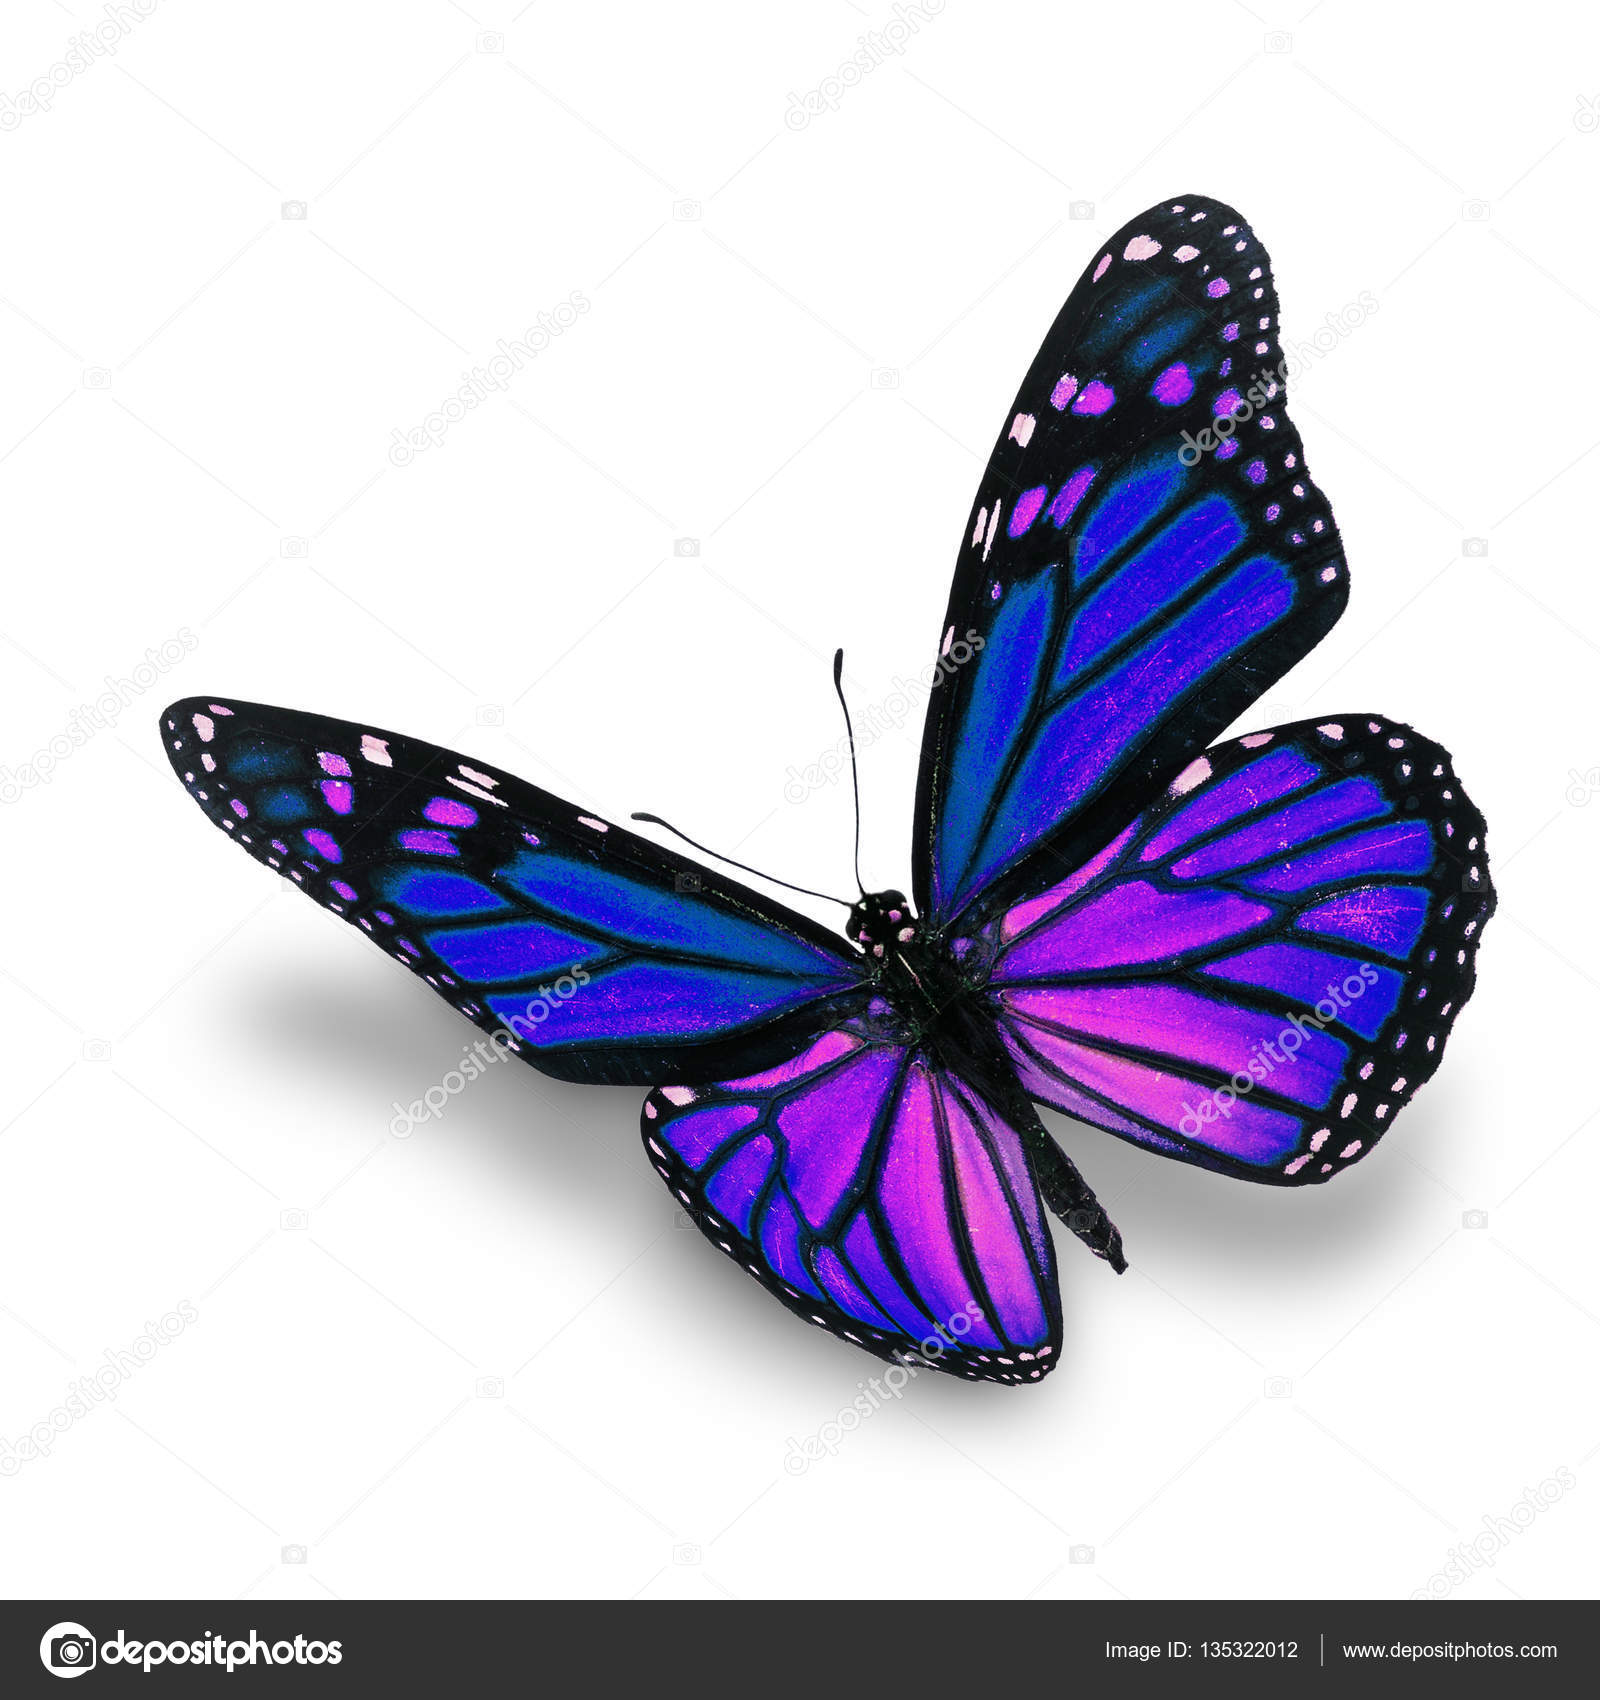 Download Image Pink Butterfly Png Transparent Clip Art Image  Gallery  This Clipart Image Pink Butterfly PNG Transparent Clip Art Image is part of Butterflies PNG  Gallery Yopriceille category